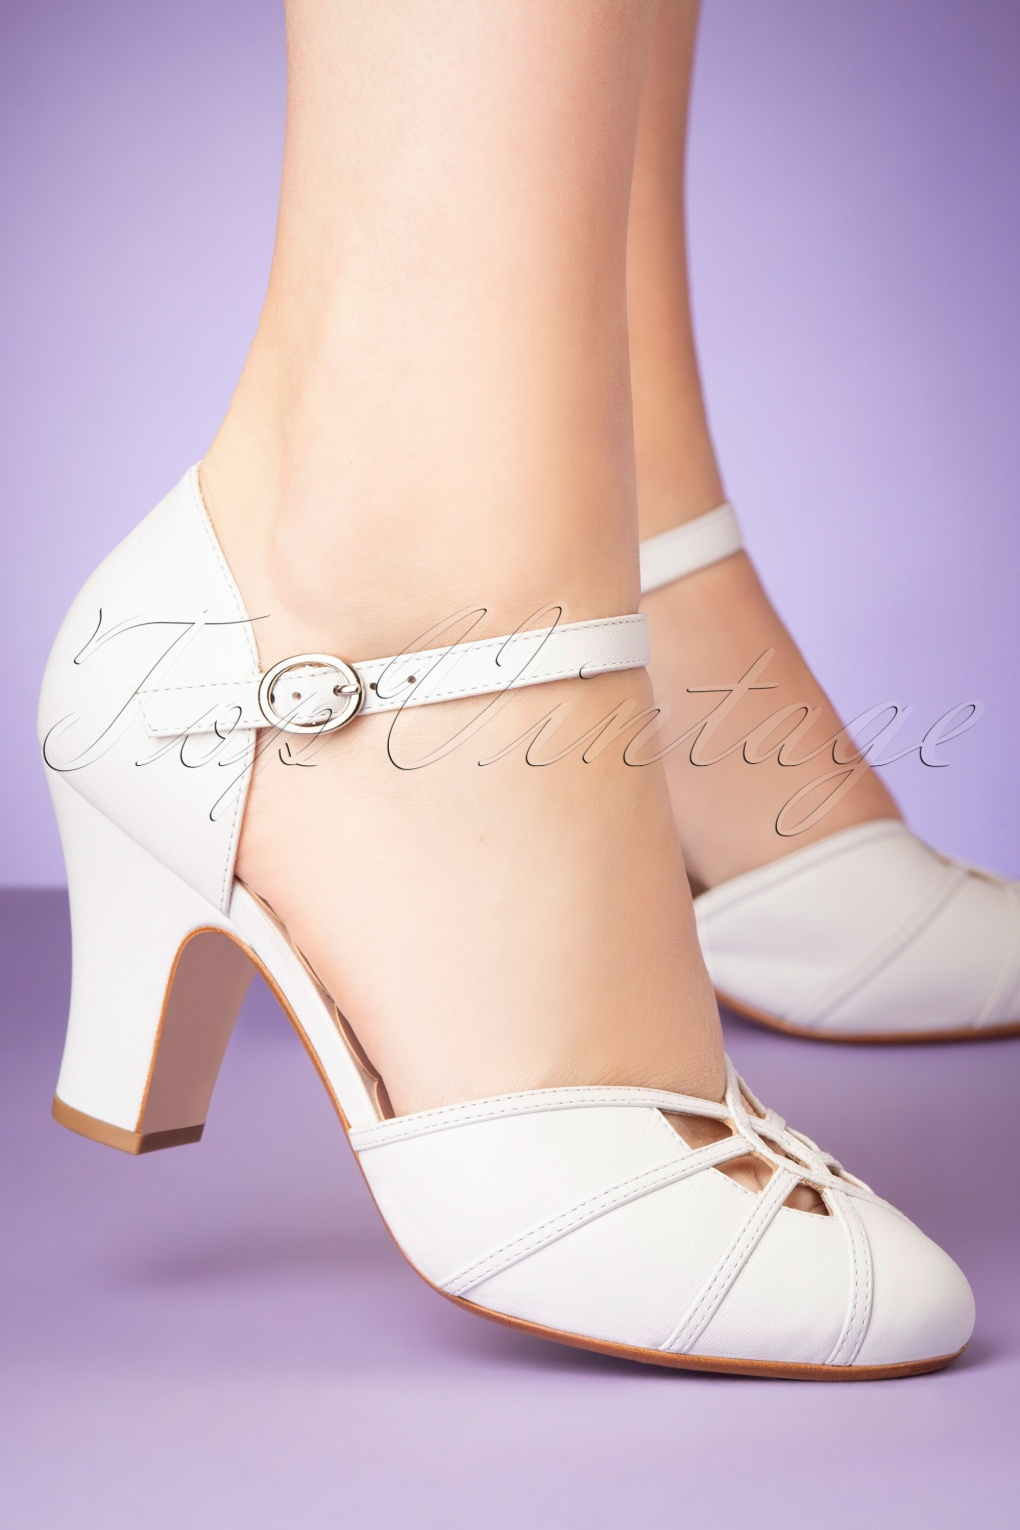 1930s Style Clothing and Fashion 50s Andie Leather Mary Jane Pumps in White £164.45 AT vintagedancer.com